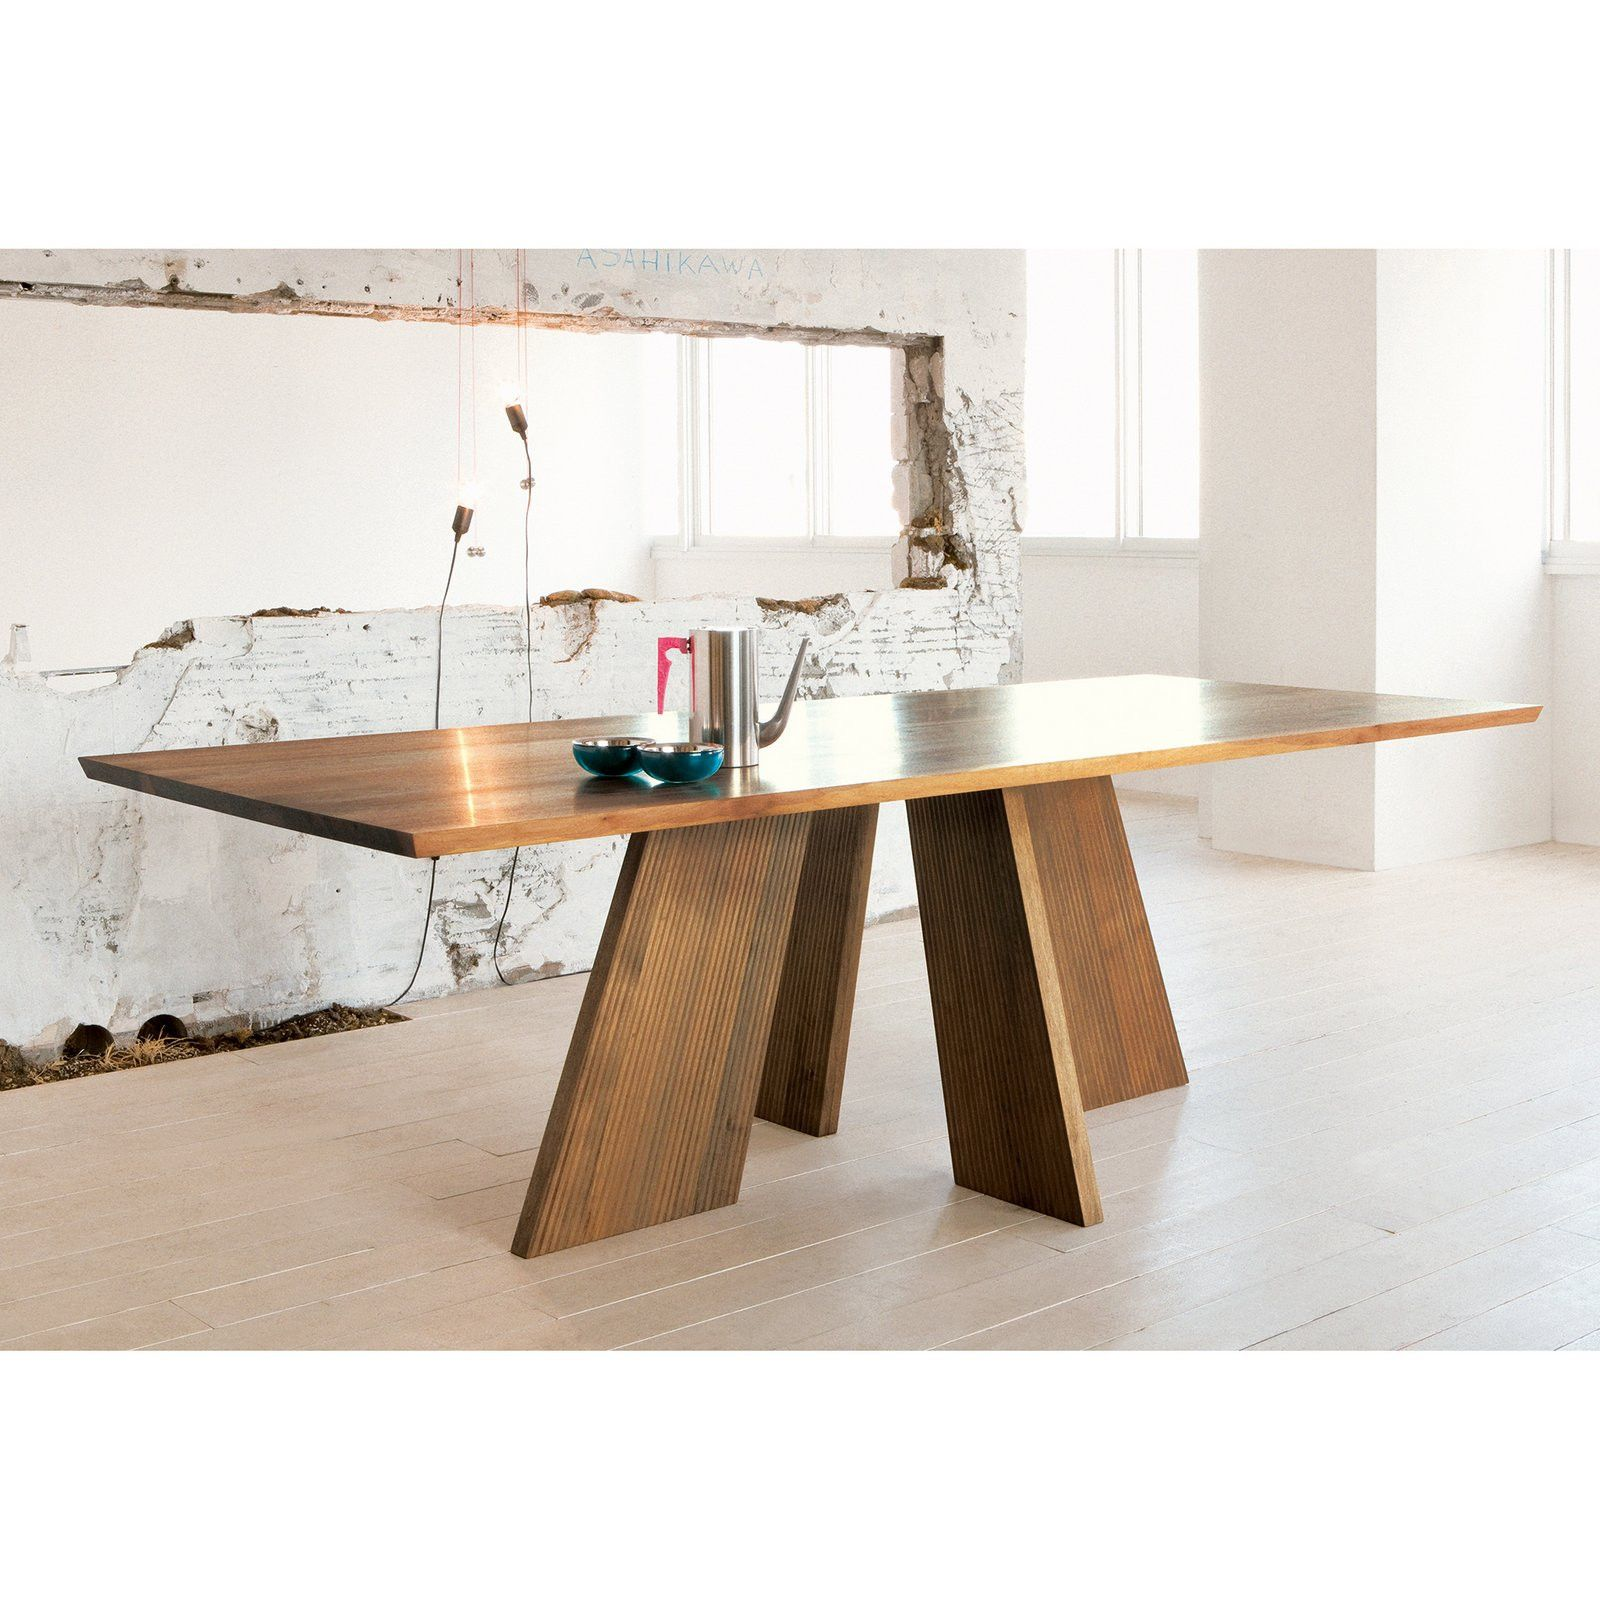 Hakama Dining Table - Dining Table - Conde House